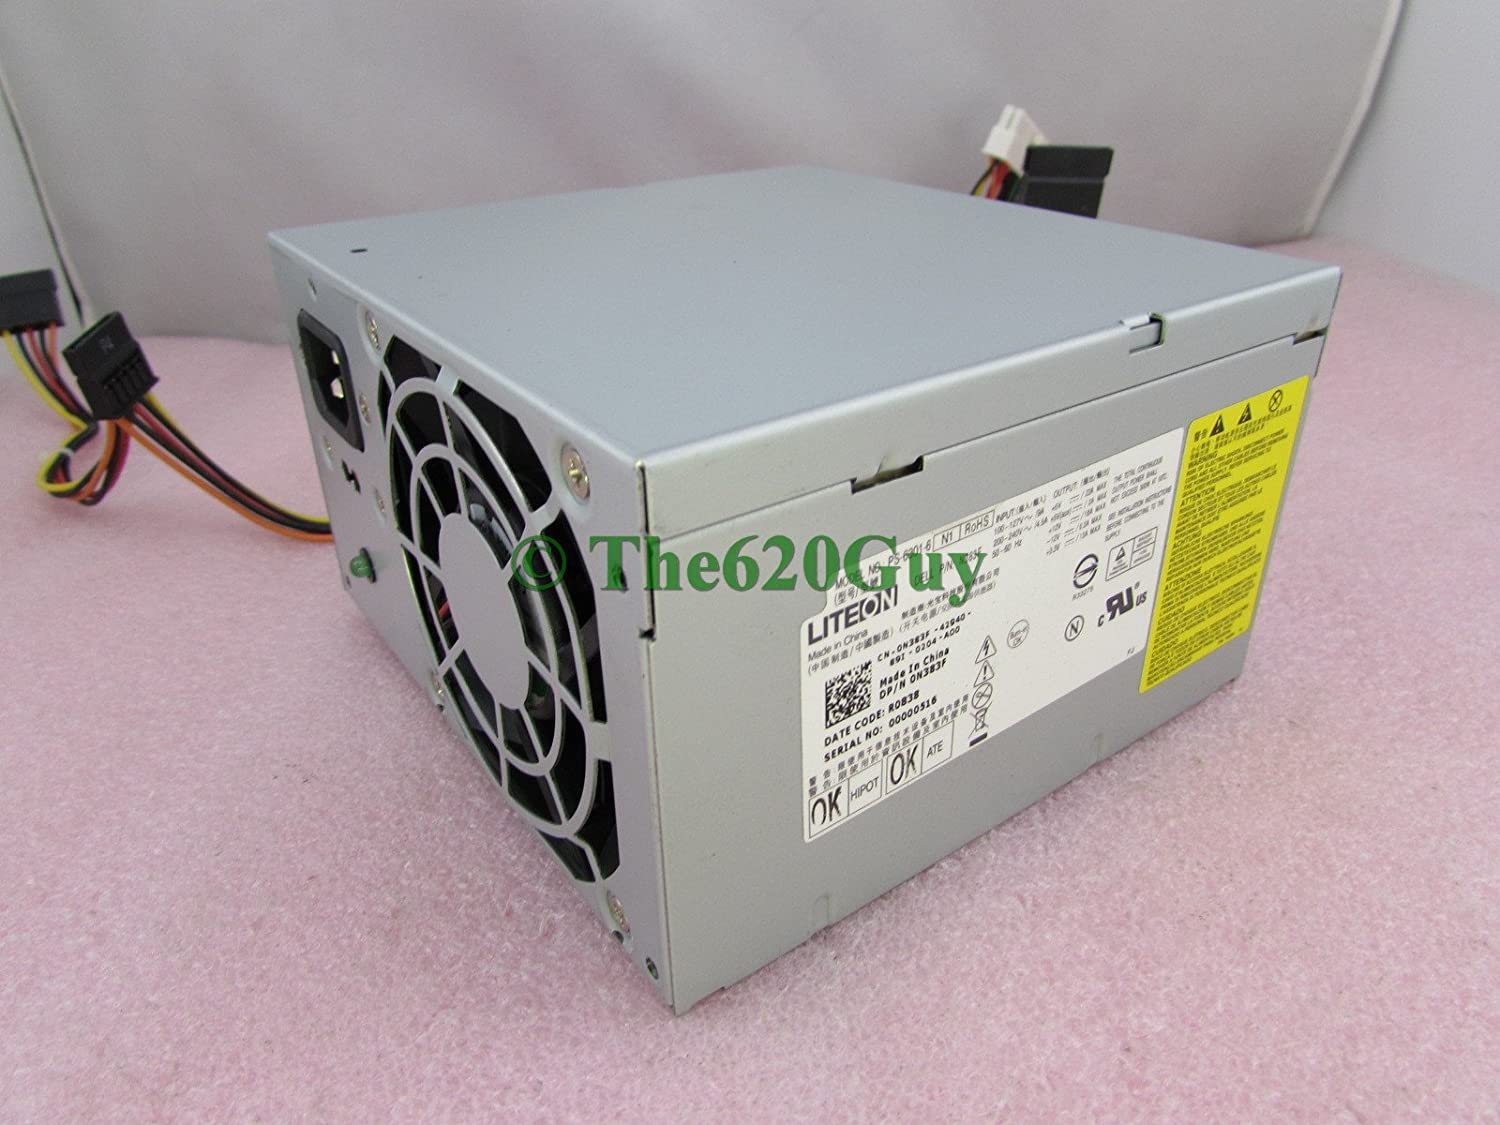 Genuine Dell Vostro 200 Inspiron 540 300W Power Supply N383F LiteOn PS-6301-6